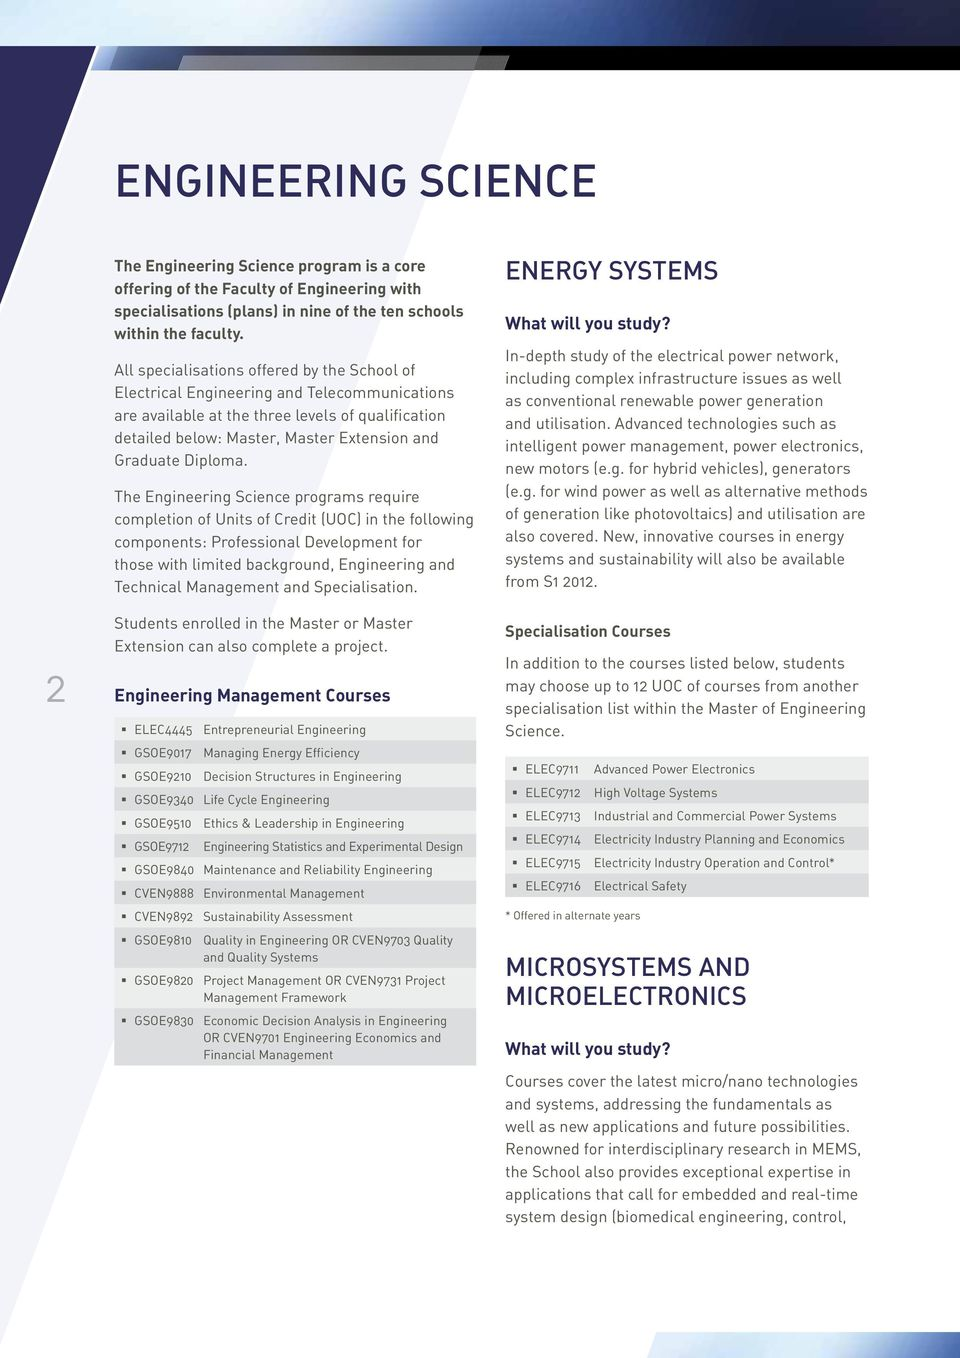 School of Electrical Engineering and Telecommunications - PDF